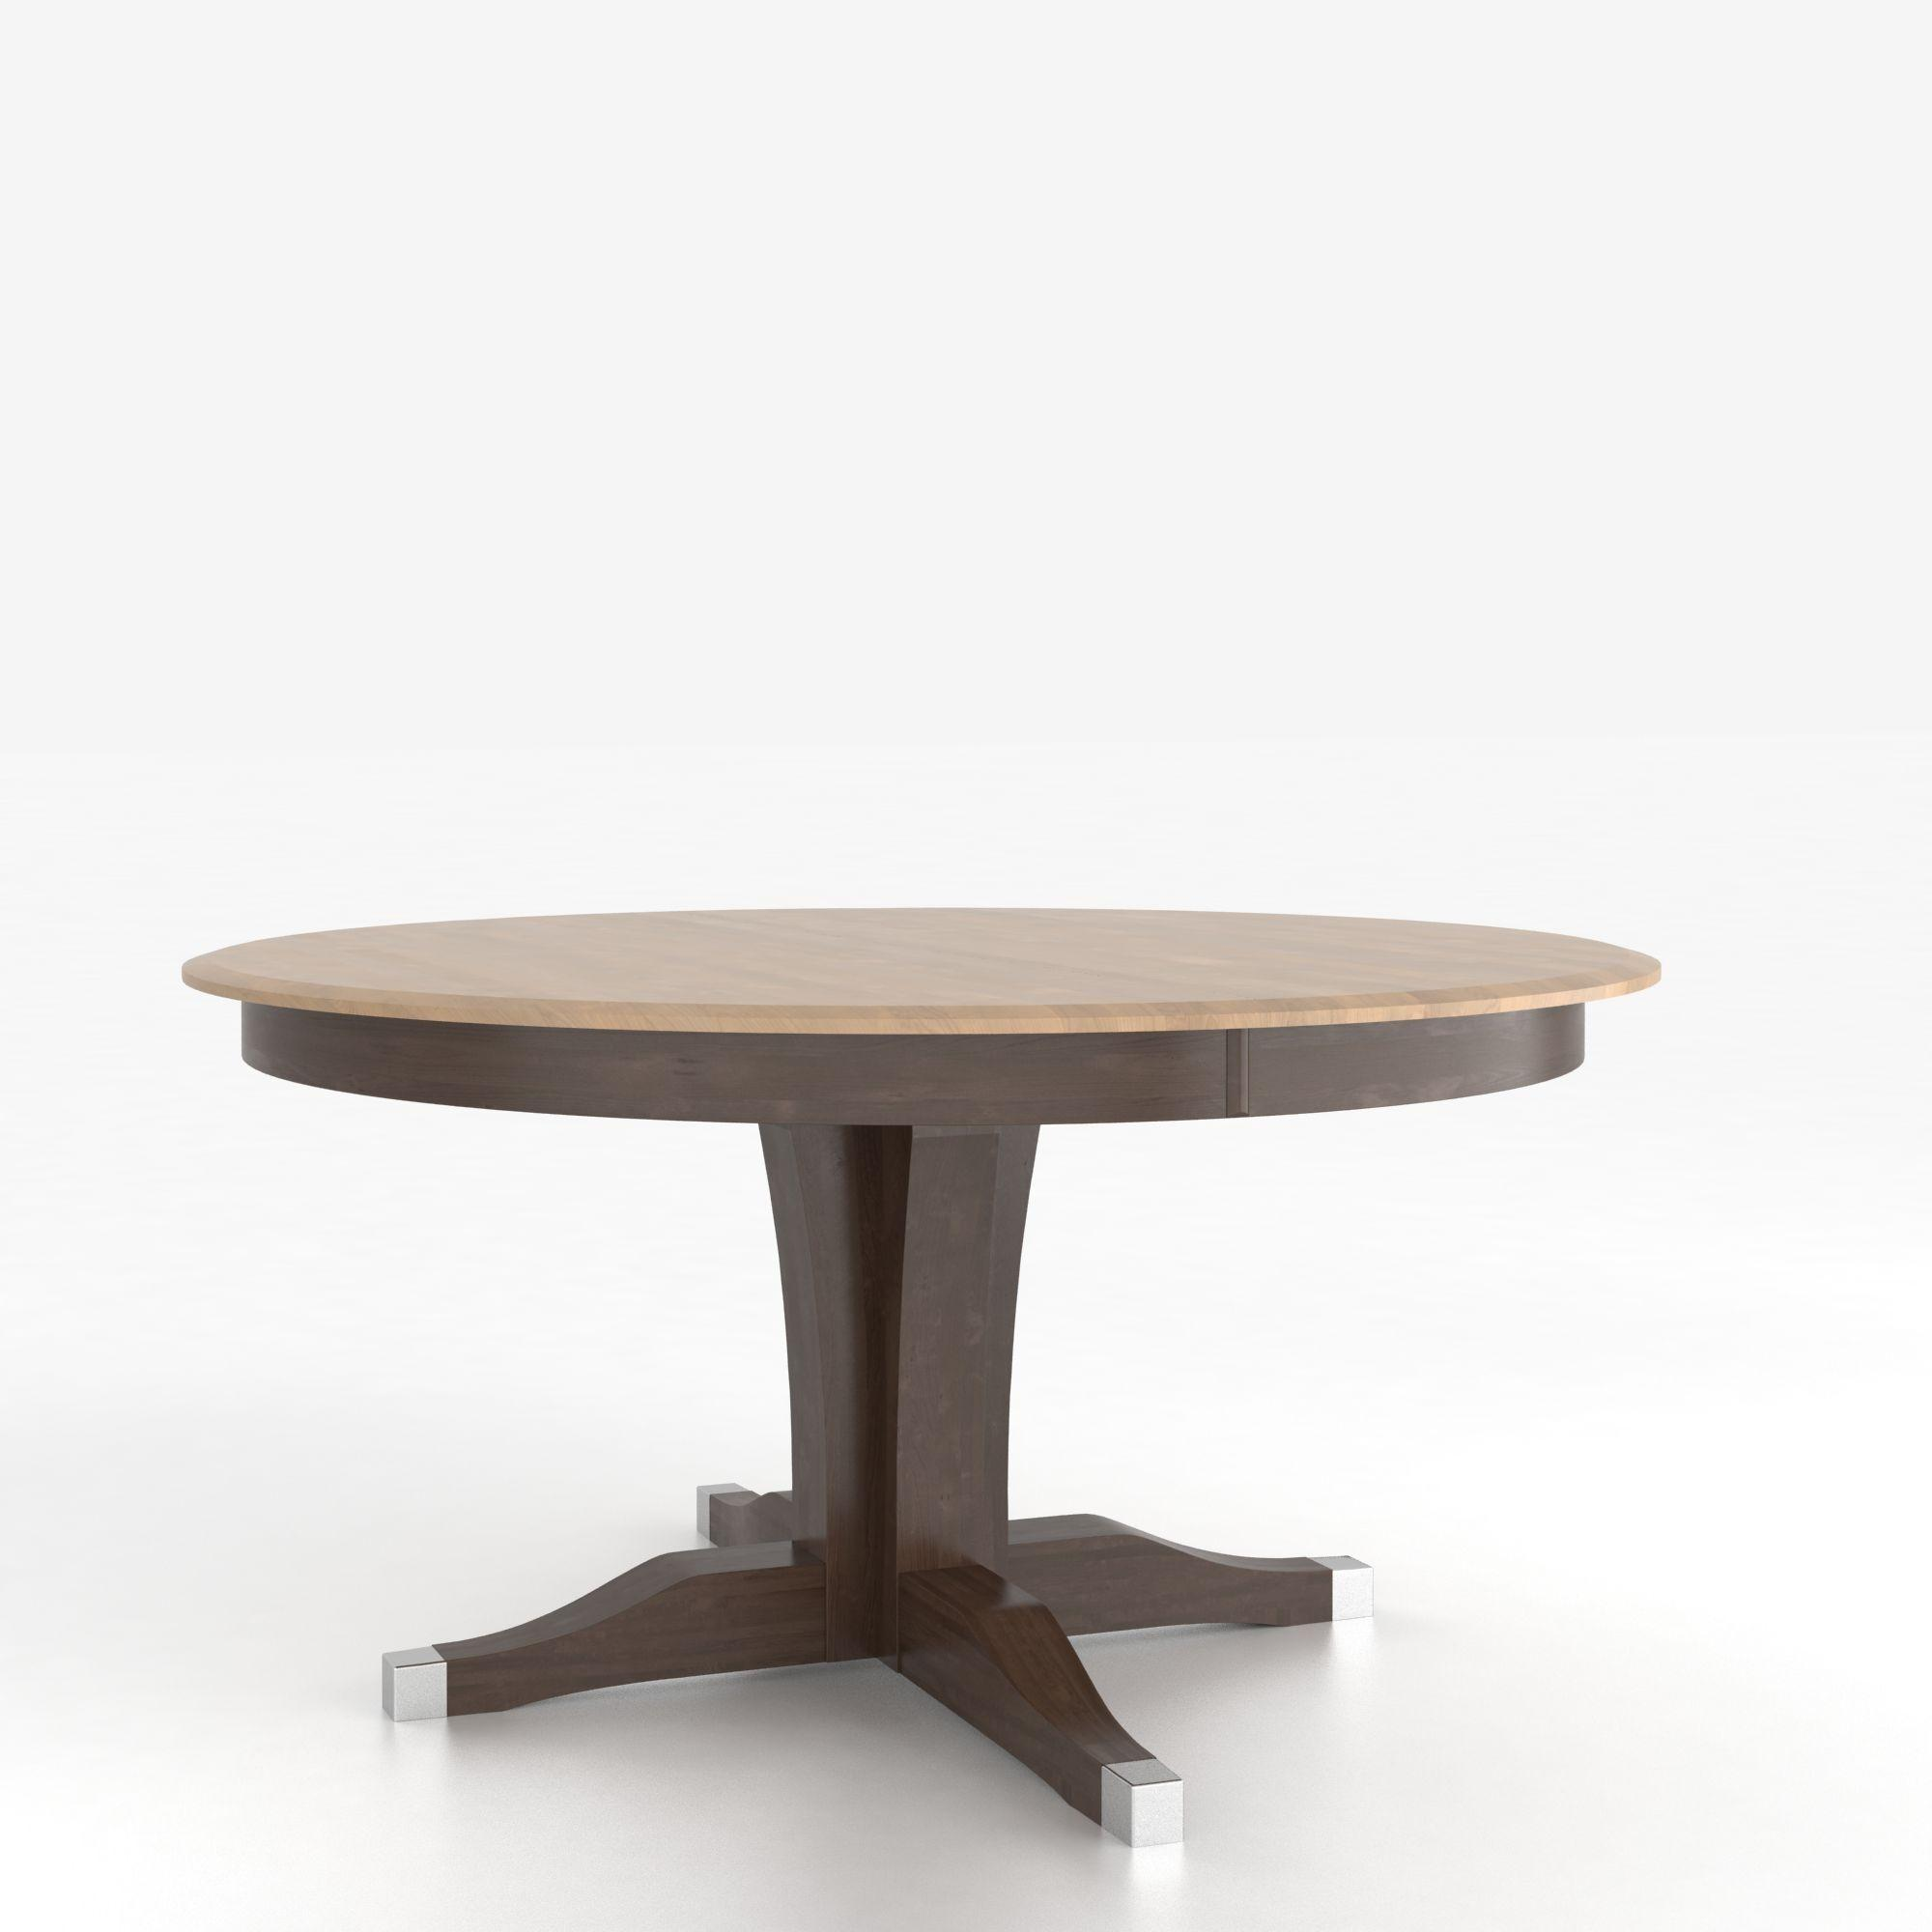 Canadel Custom Dining Tables Trn060602029mxabf Customizable Round Table With Pedestal Dunk